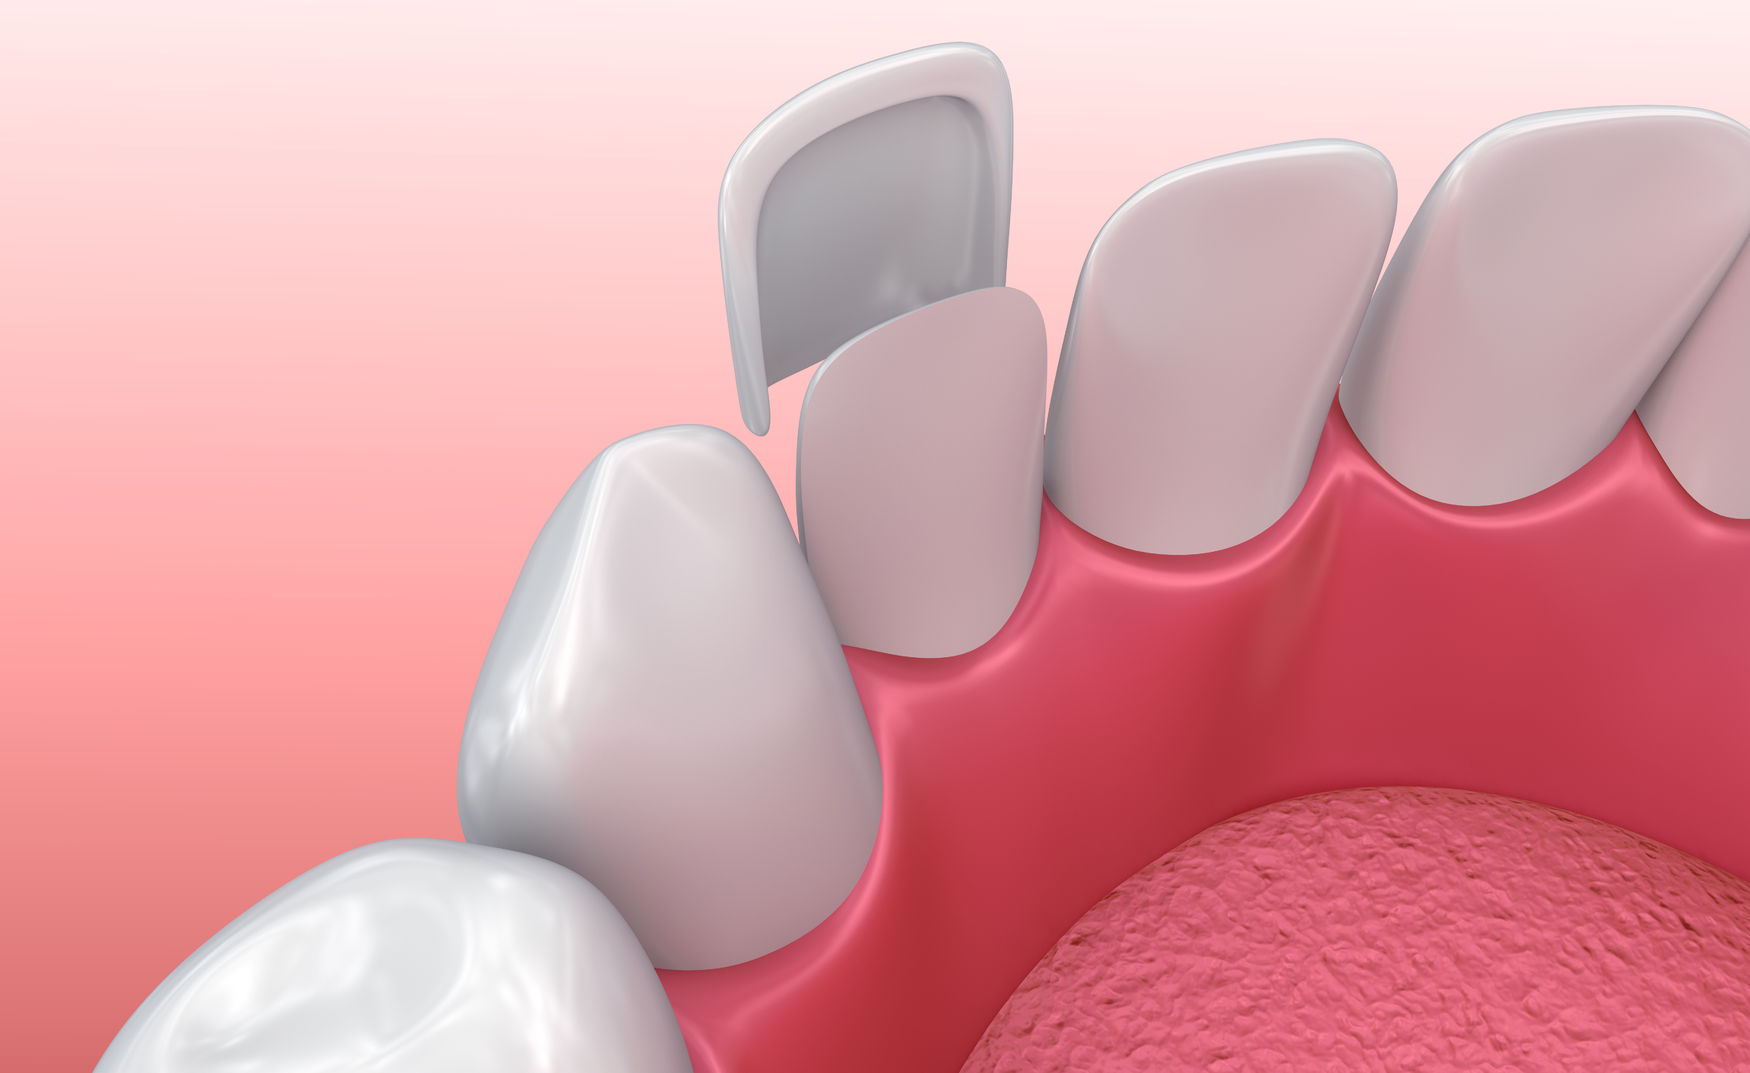 66754859 - dental veneers: porcelain veneer installation procedure. 3d illustration